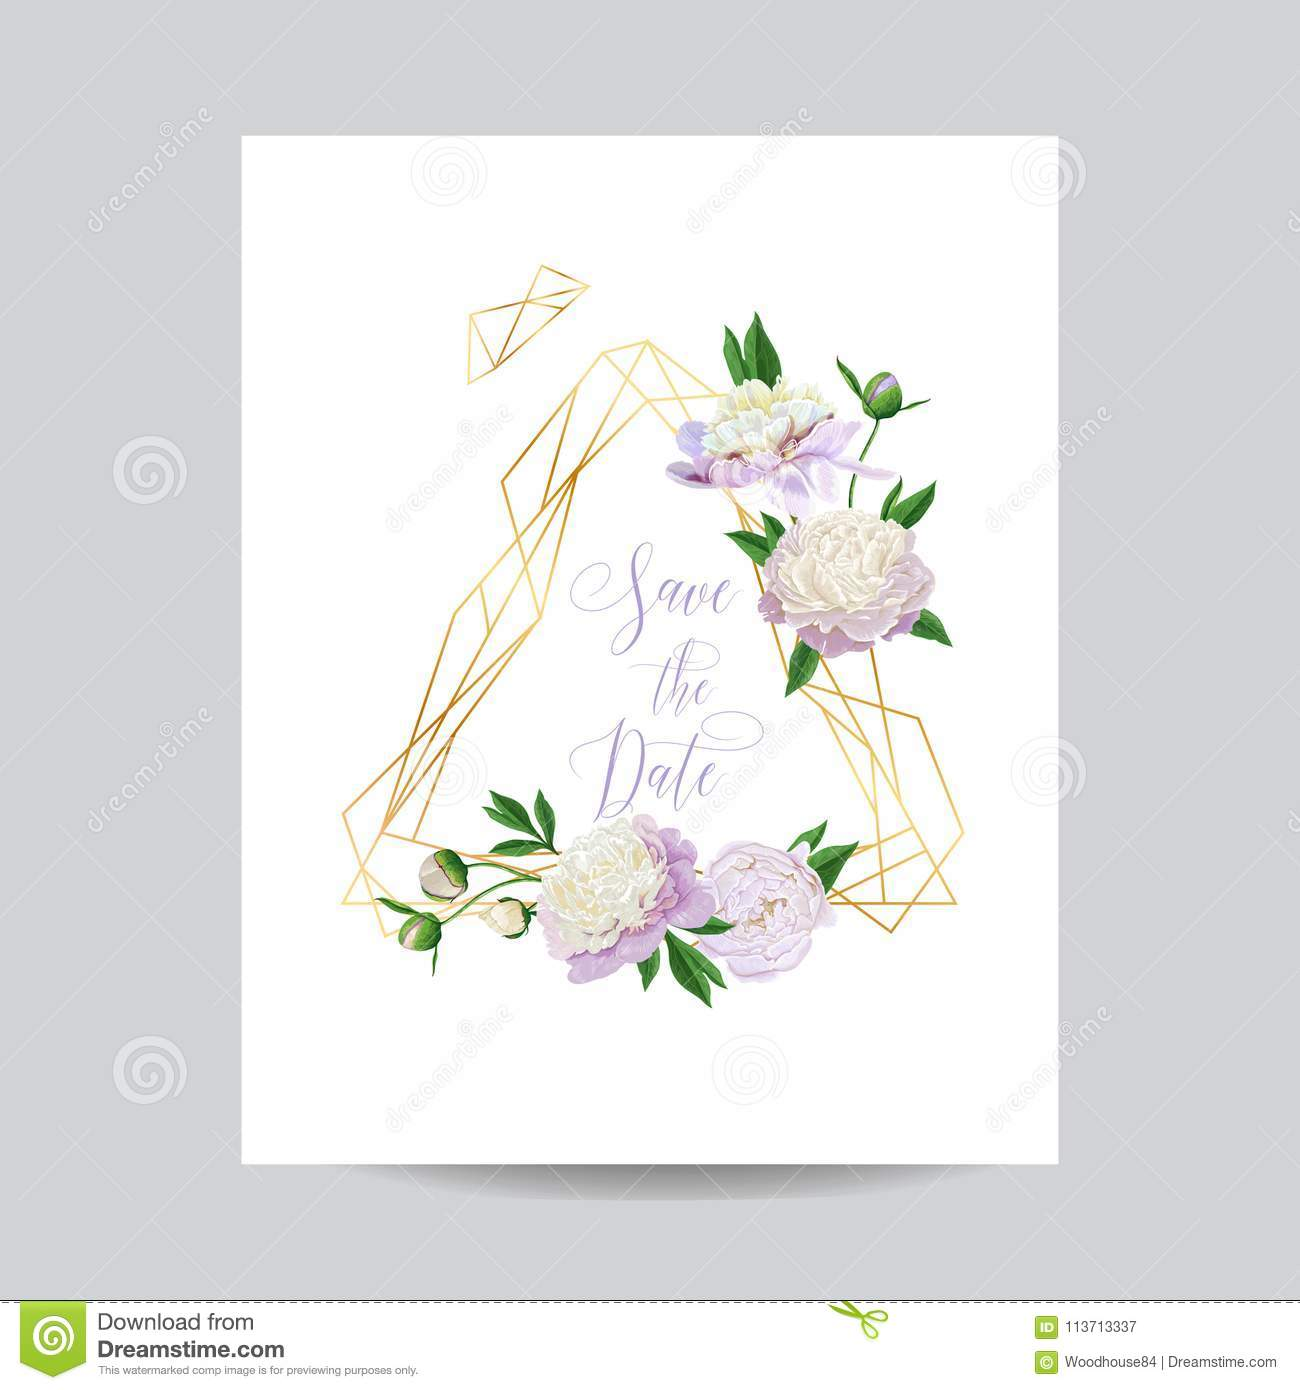 Golden Save The Date For Wedding Invitation Wedding: Wedding Invitation Floral Template. Save The Date Golden